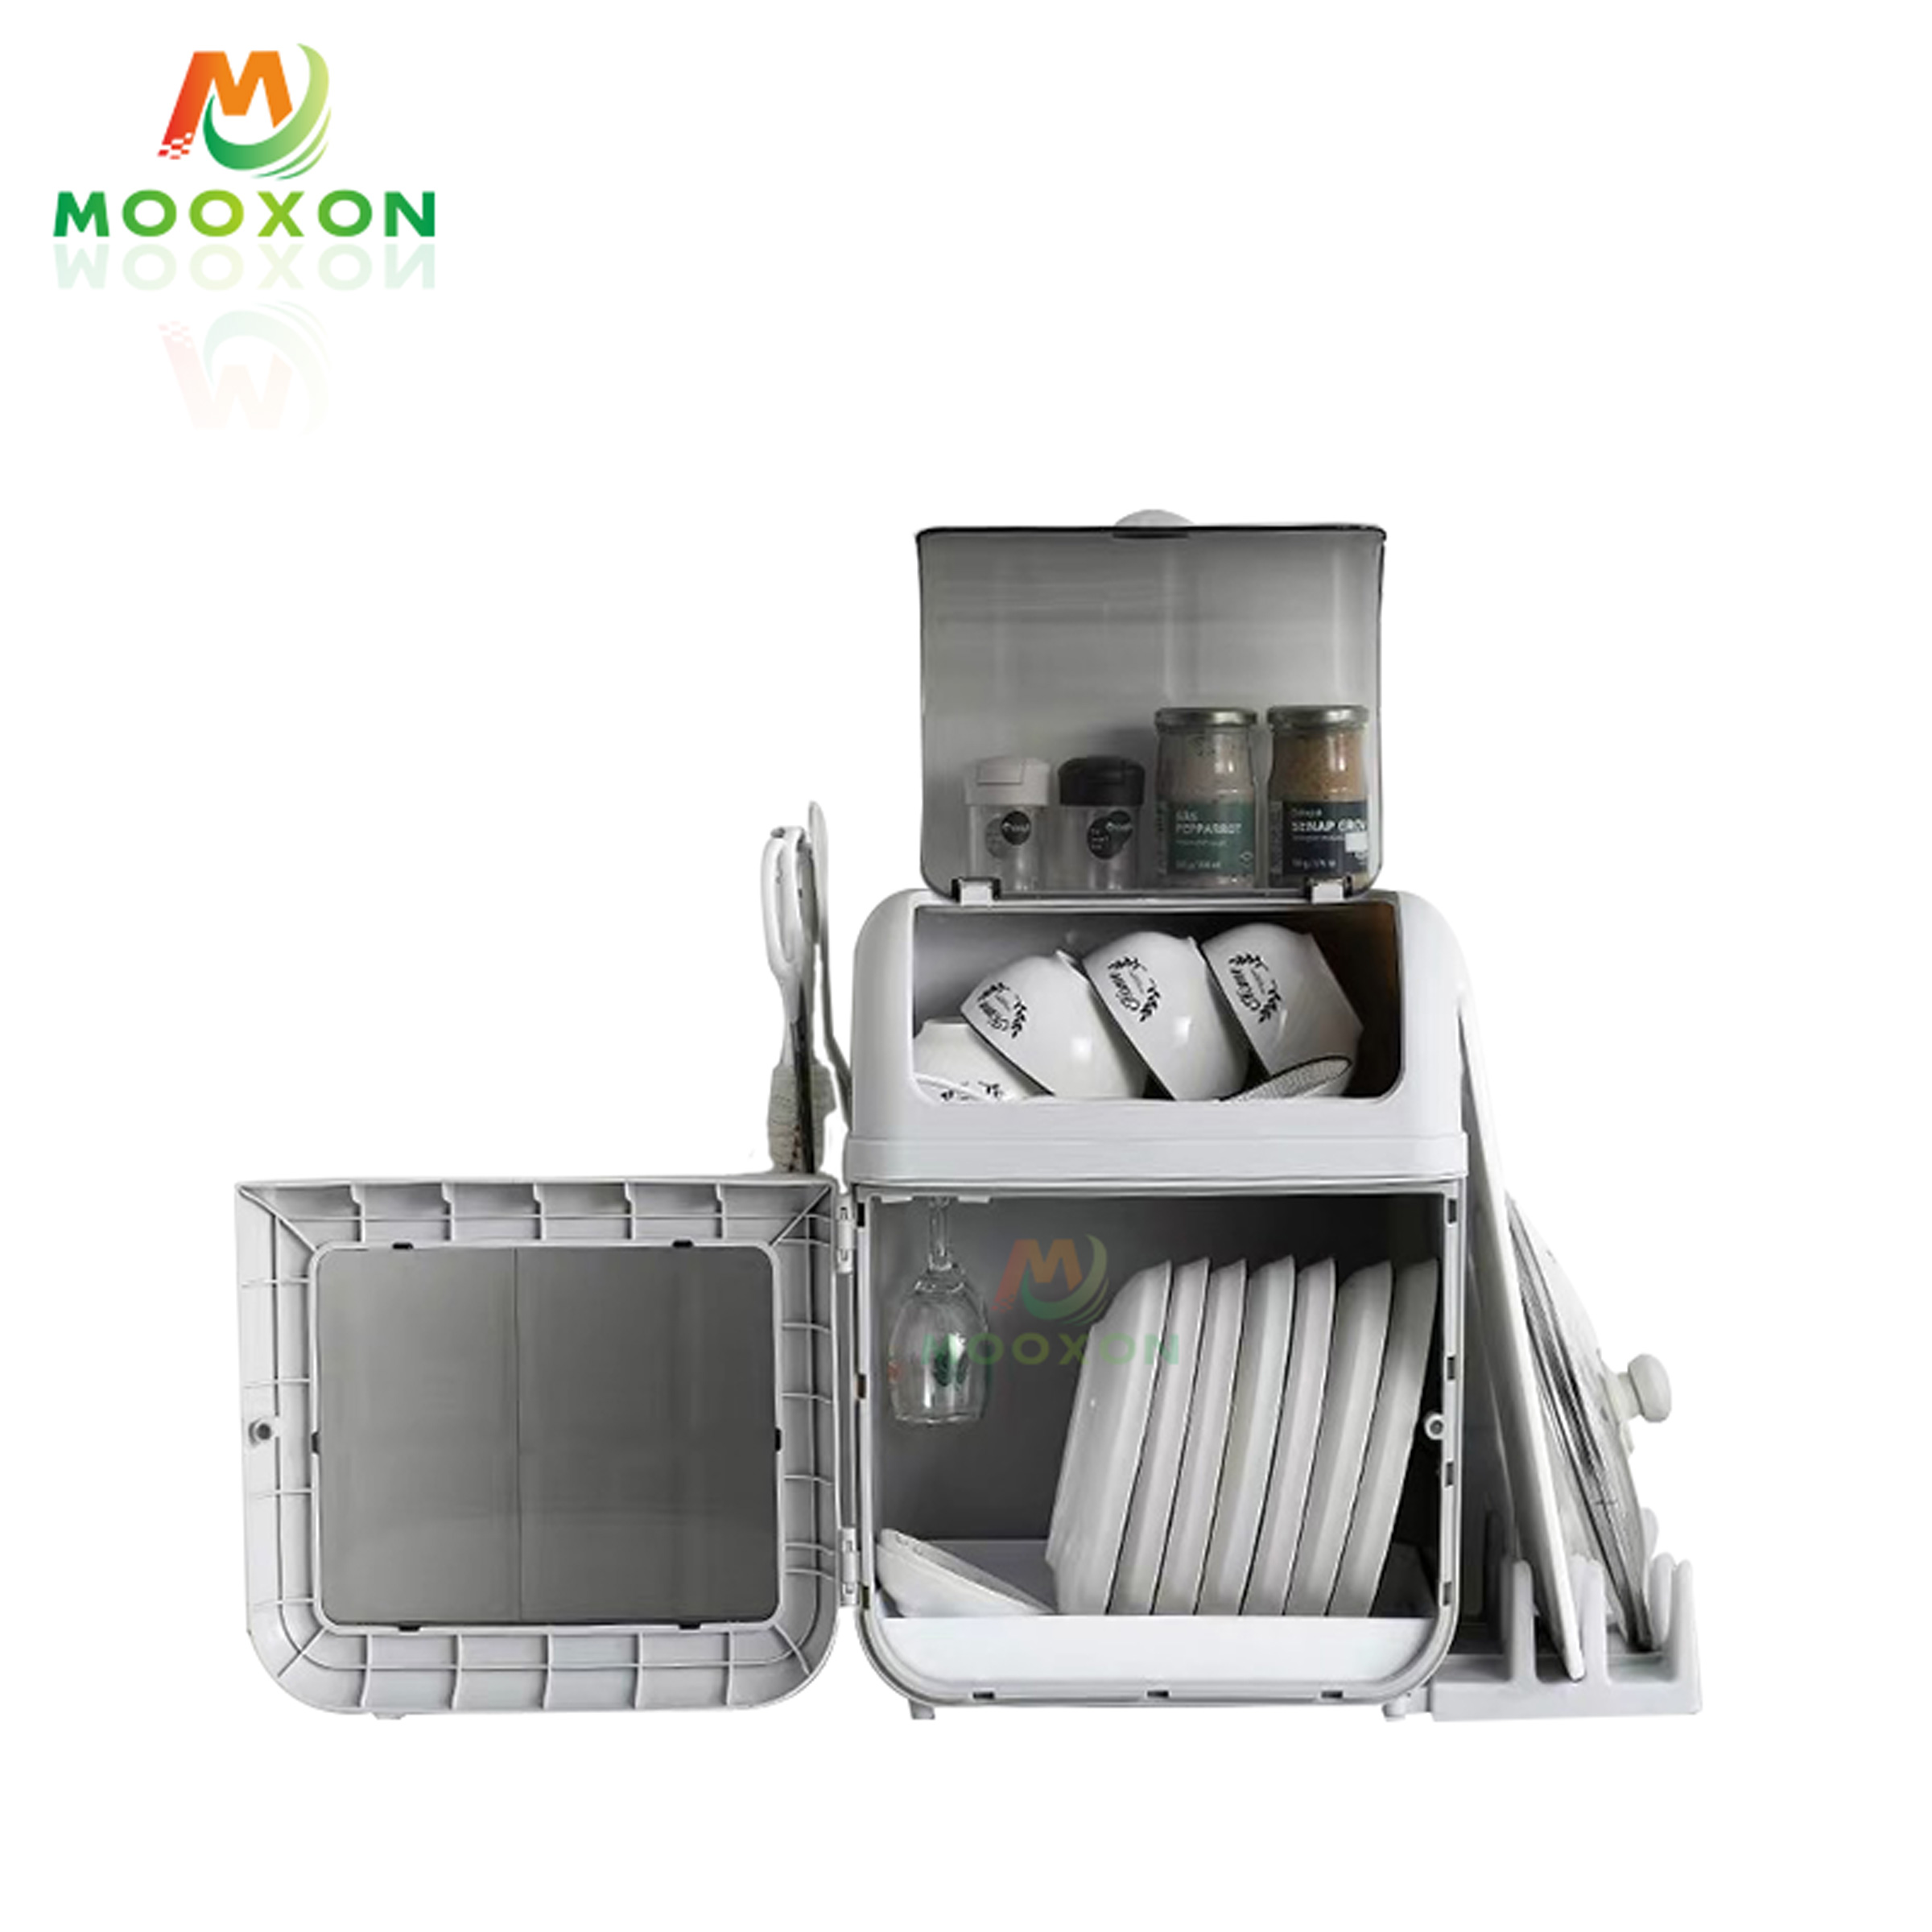 2 Tiers Kitchen Organizer Standing Cutlery Shelf Storages And Holders Box Dish Drying Rack